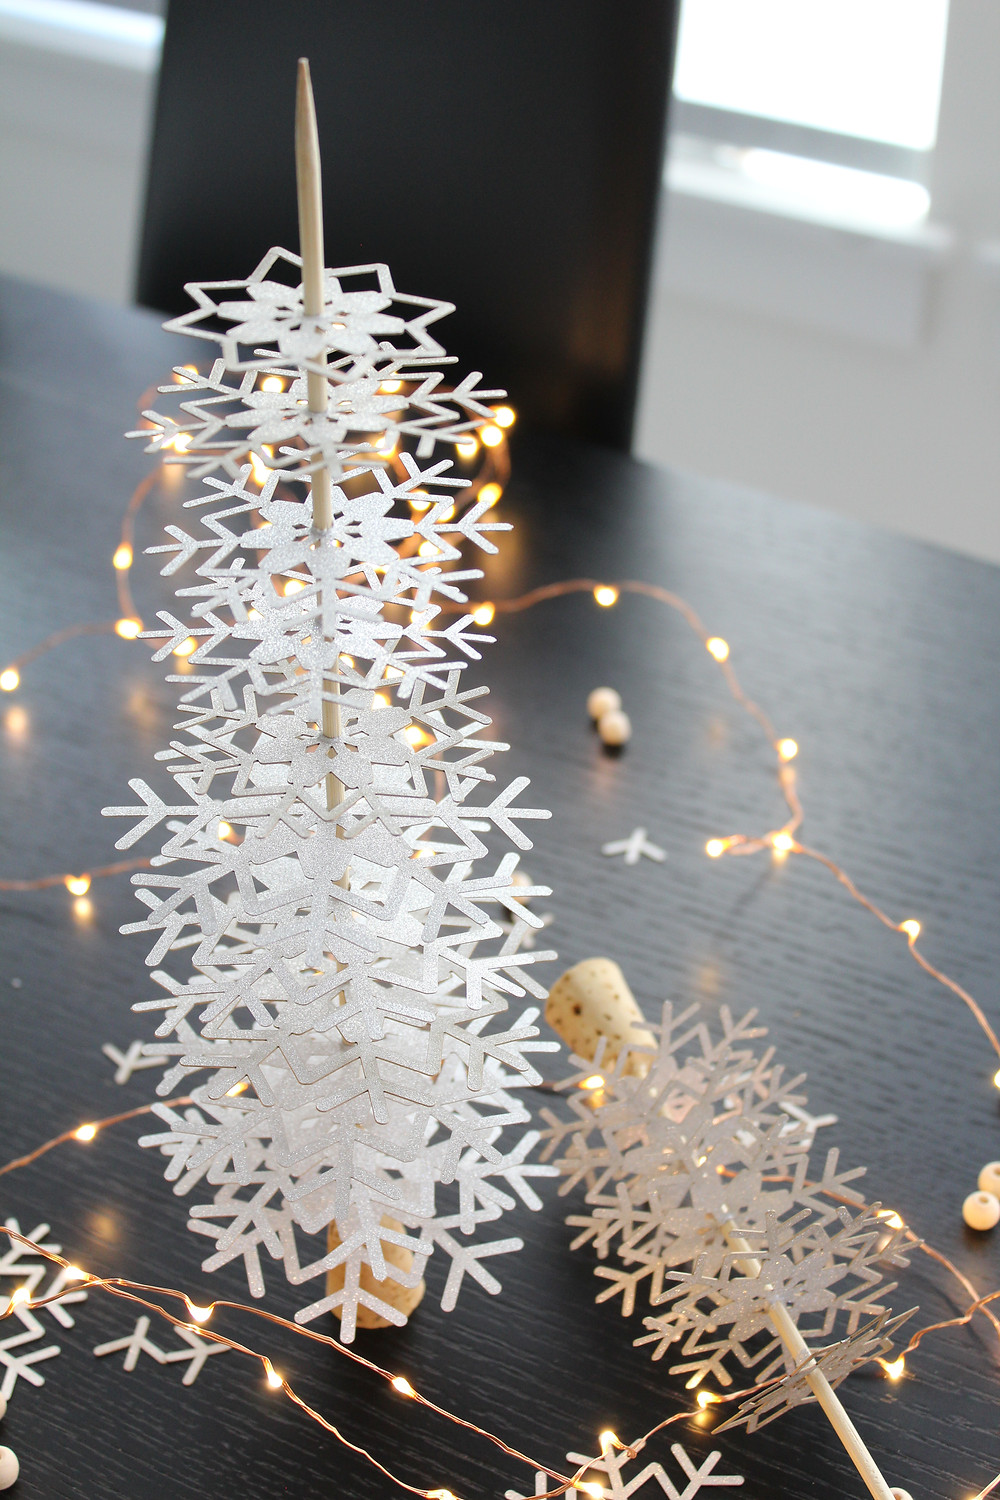 A simple and easy Christmas craft. DIY these beautiful snowflake christmas trees to add the perfect touch of whimsy to your holiday decor. #holidaydecor #DIYchristmas #christmascraft